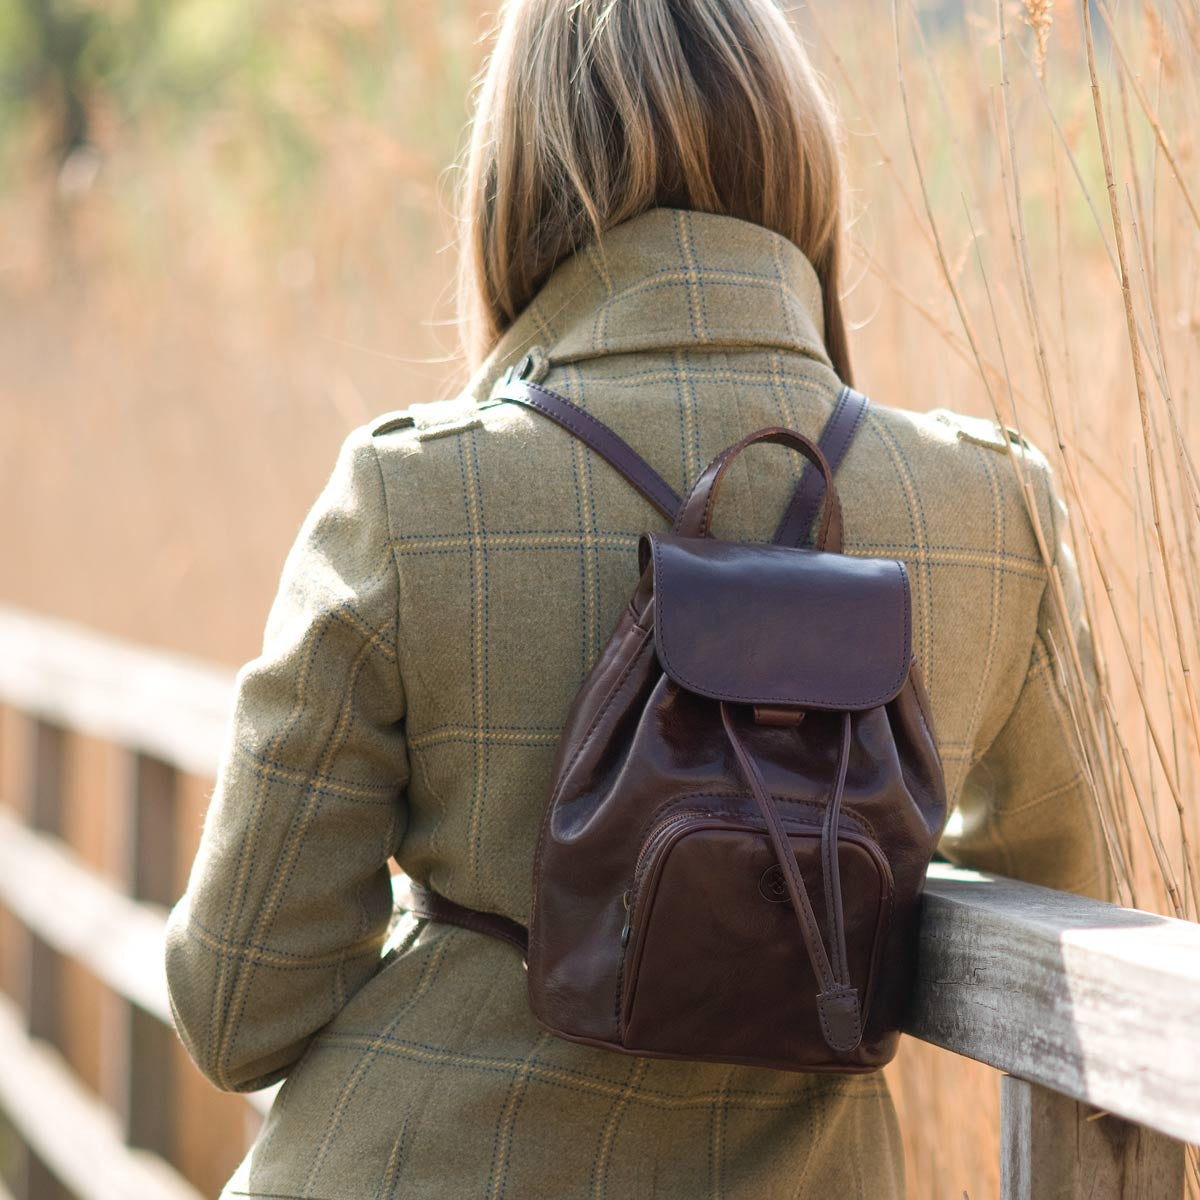 Image 6 of the 'Popolo' Compact Black Veg-Tanned Leather Shoulder Bag